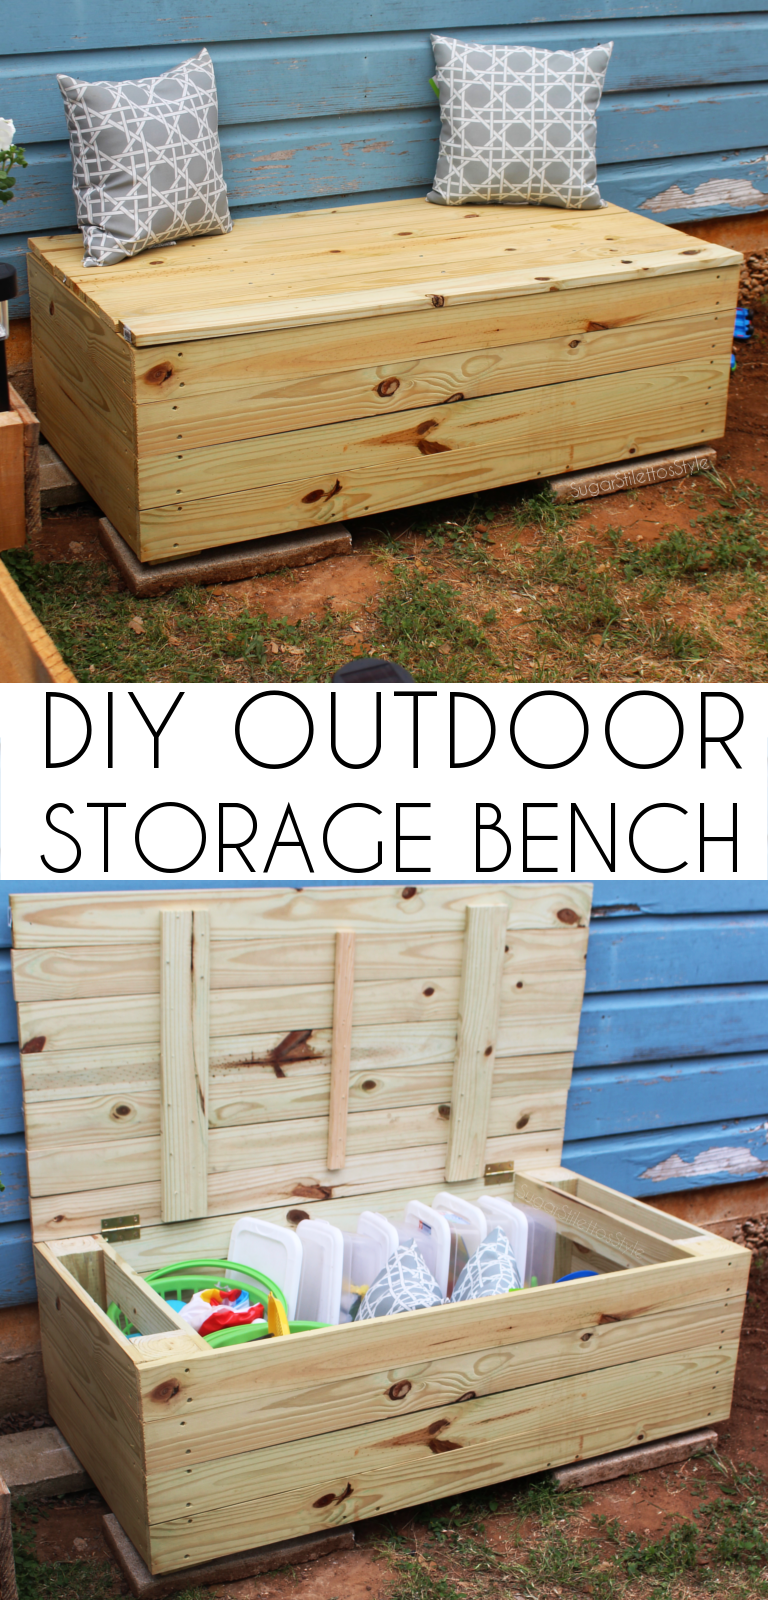 diy outdoor storage bench, outdoor toy box | diy kids